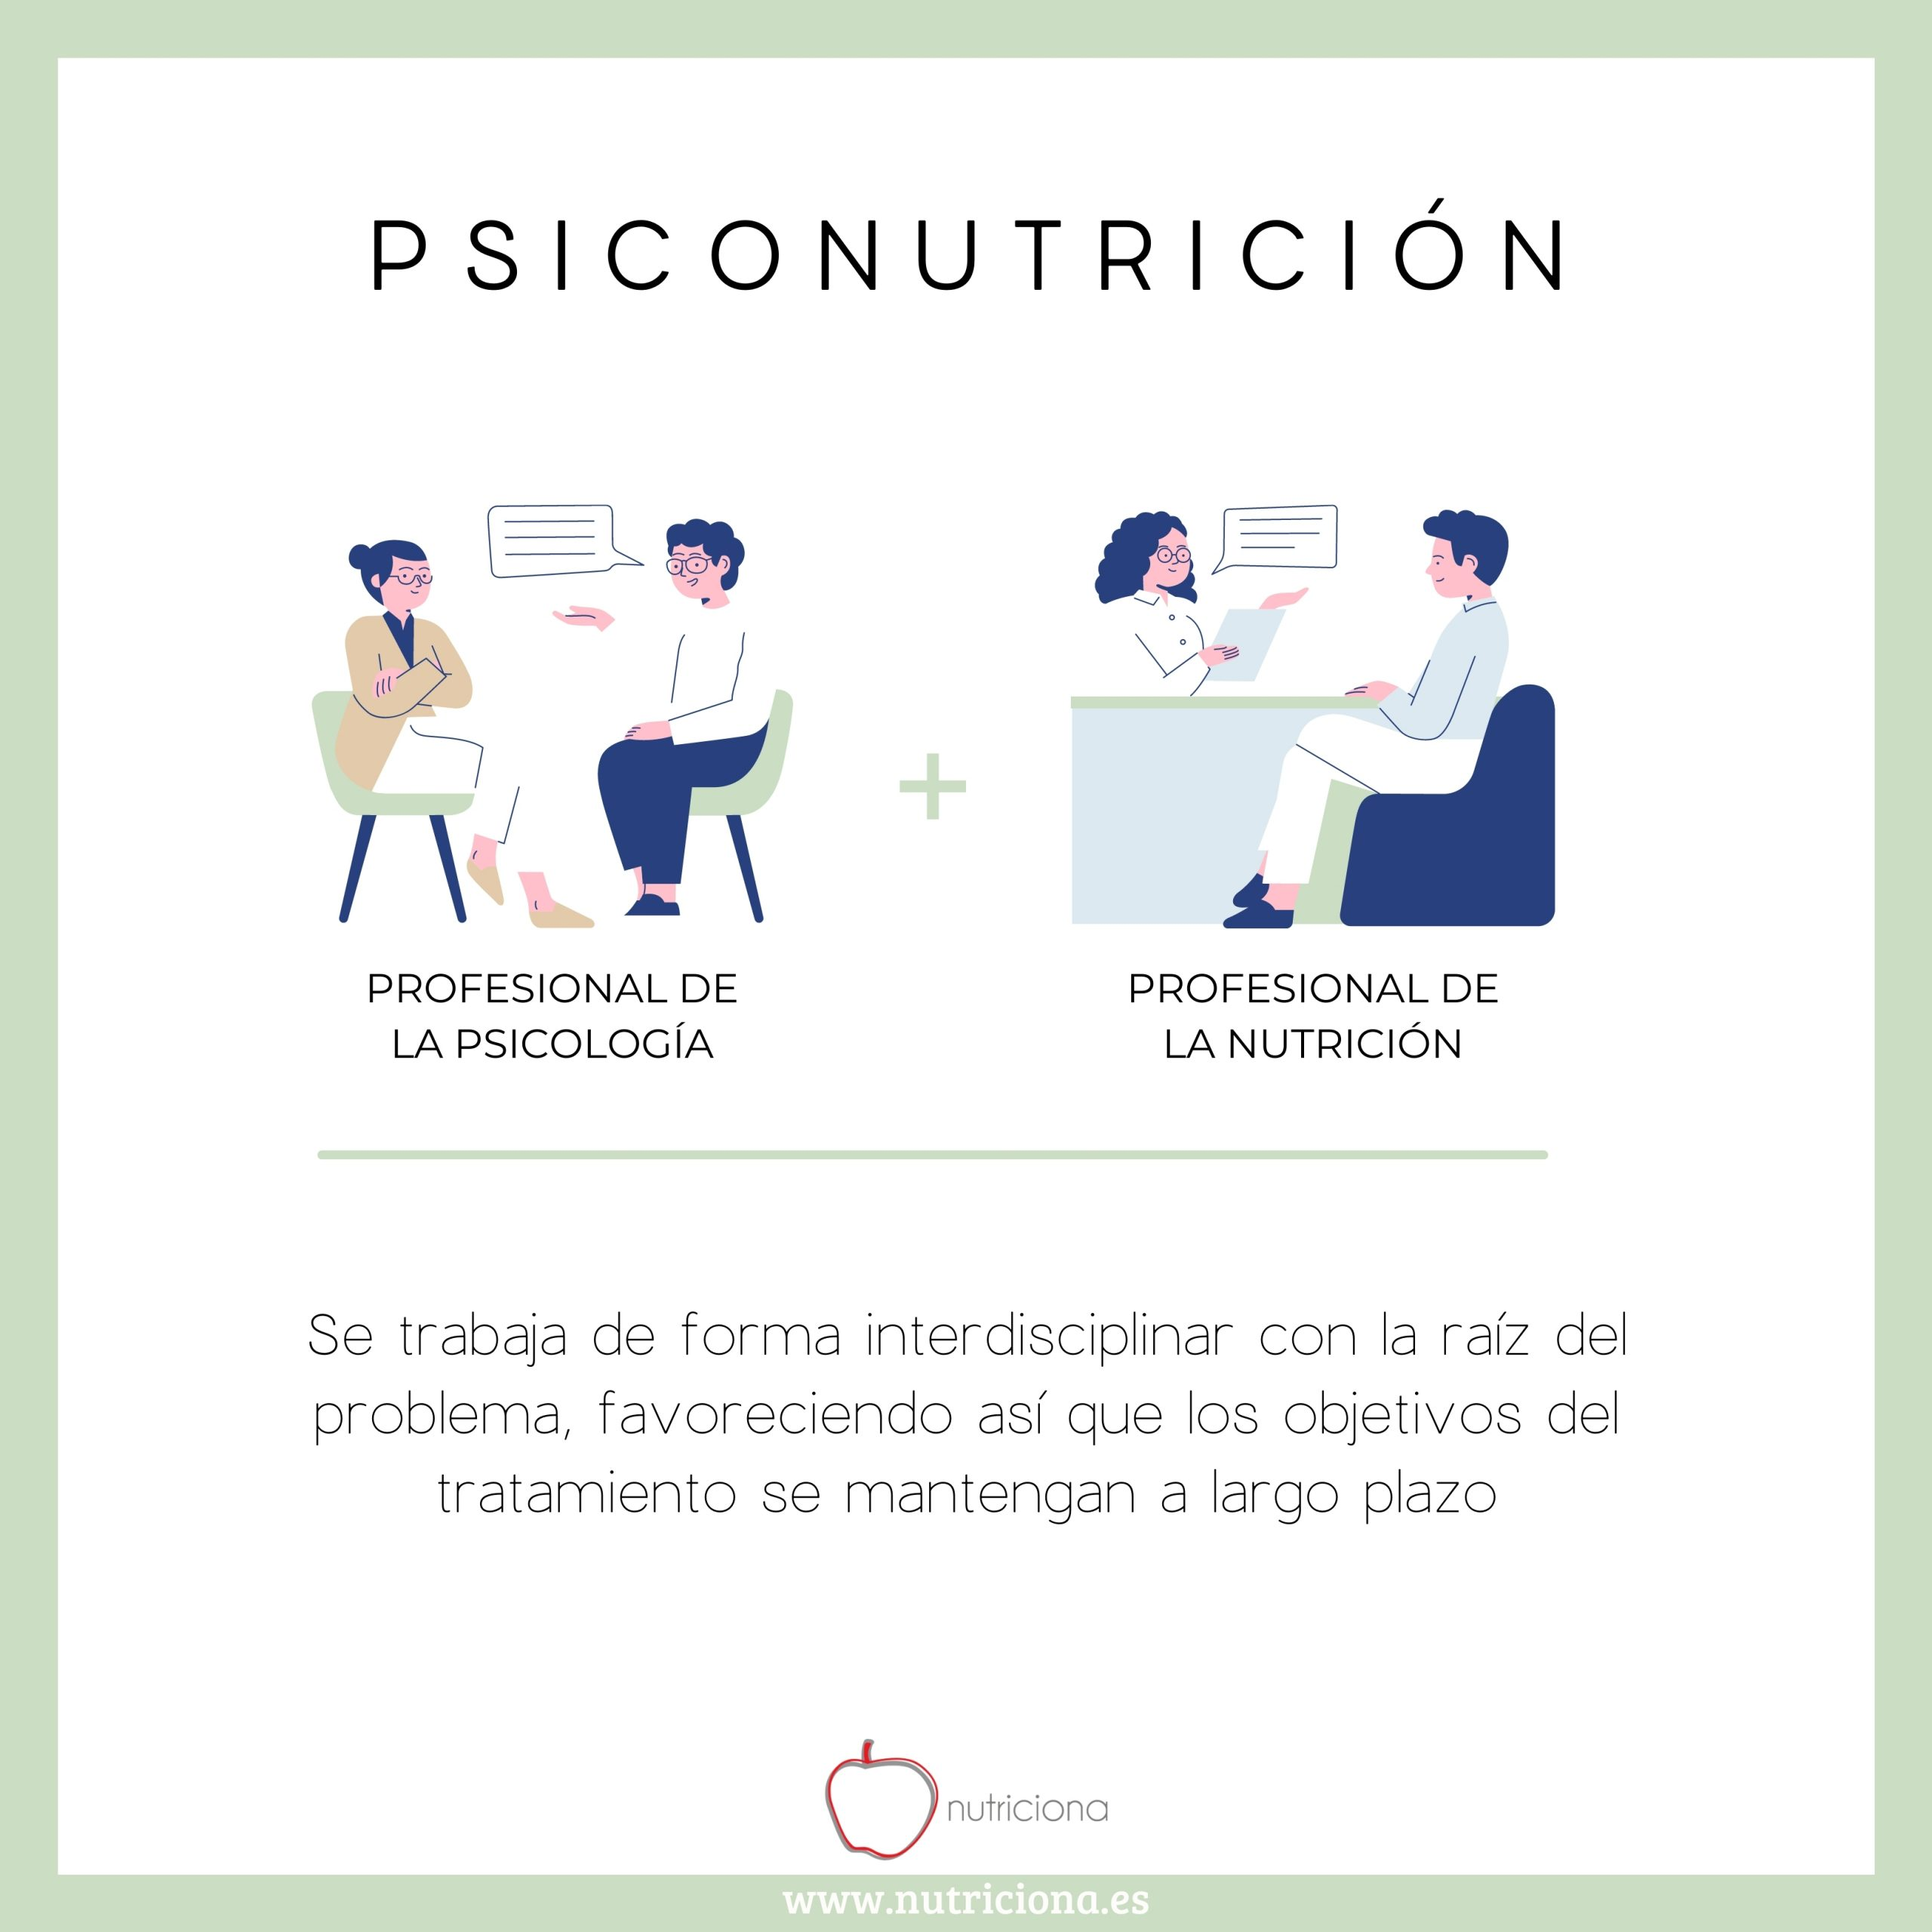 "Infografía en la que se pueden ver dos imágenes vectorizadas. La de la izquierda, dos personas, una psicóloga y el paciente enfrente hablando, a su derecha, la otra imagen con un símbolo + en el medio de ambas. Una nutricionista hablando con un paciente. Debajo de ambas, un texto en el que se puede leer ""se trabaja de forma interdisciplinar con la raíz del problema, favoreciendo así que los objetivos del tratamiento se mantengan a largo plazo"" En la parte inferior central, el logo de NUTRICIONA."